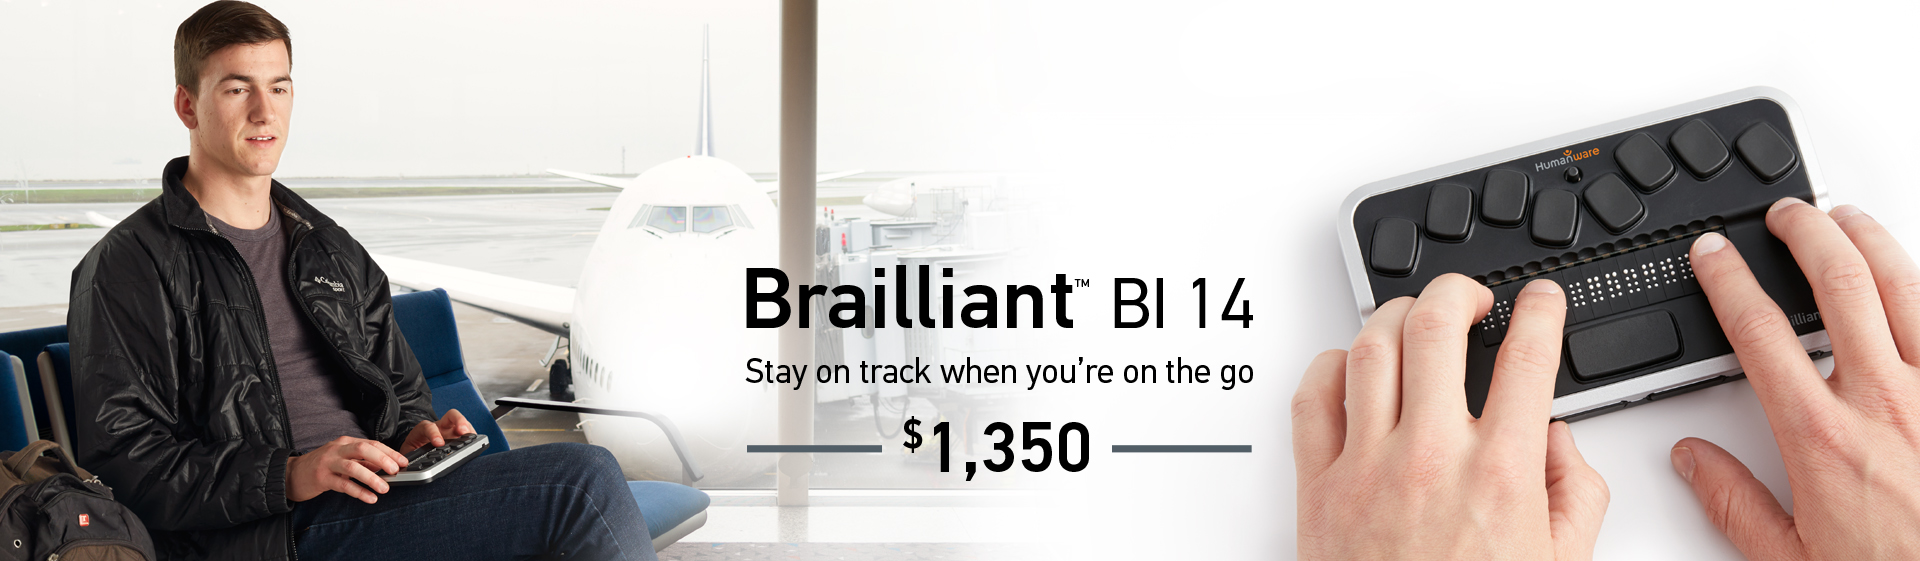 Brailliant BI 14 - Stay on track when you're on the go - $1350